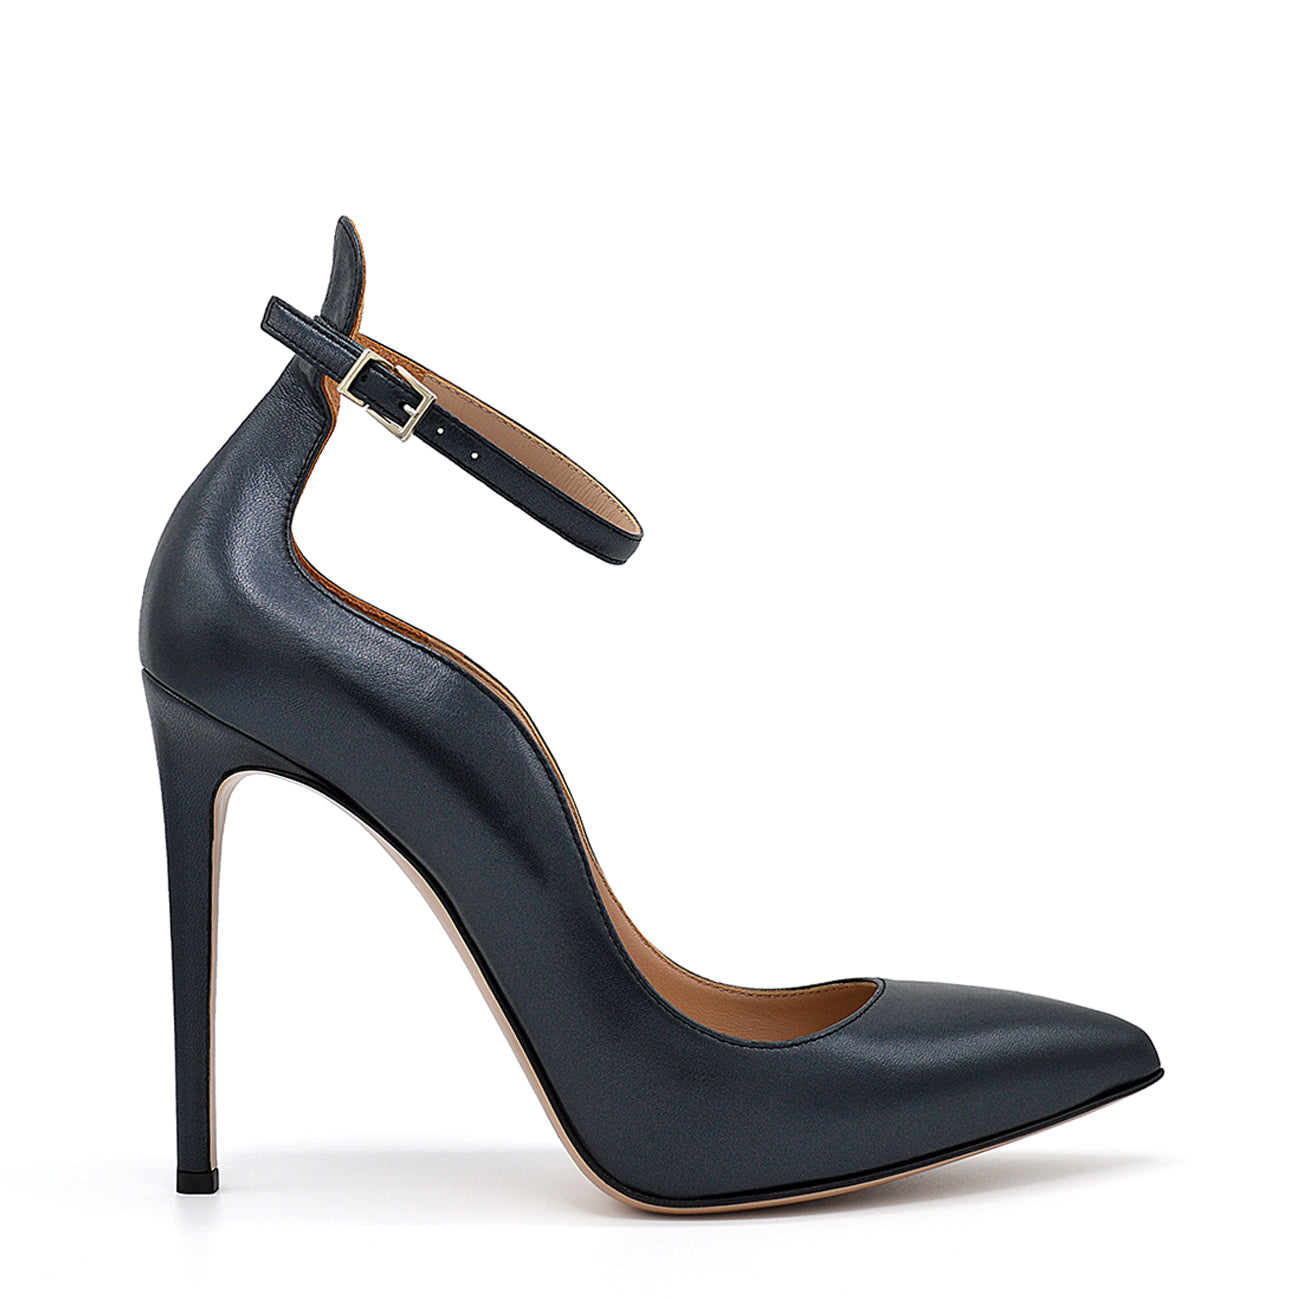 Xilian. <br> Ankle strap stiletto heel black pearly calfskin pumps